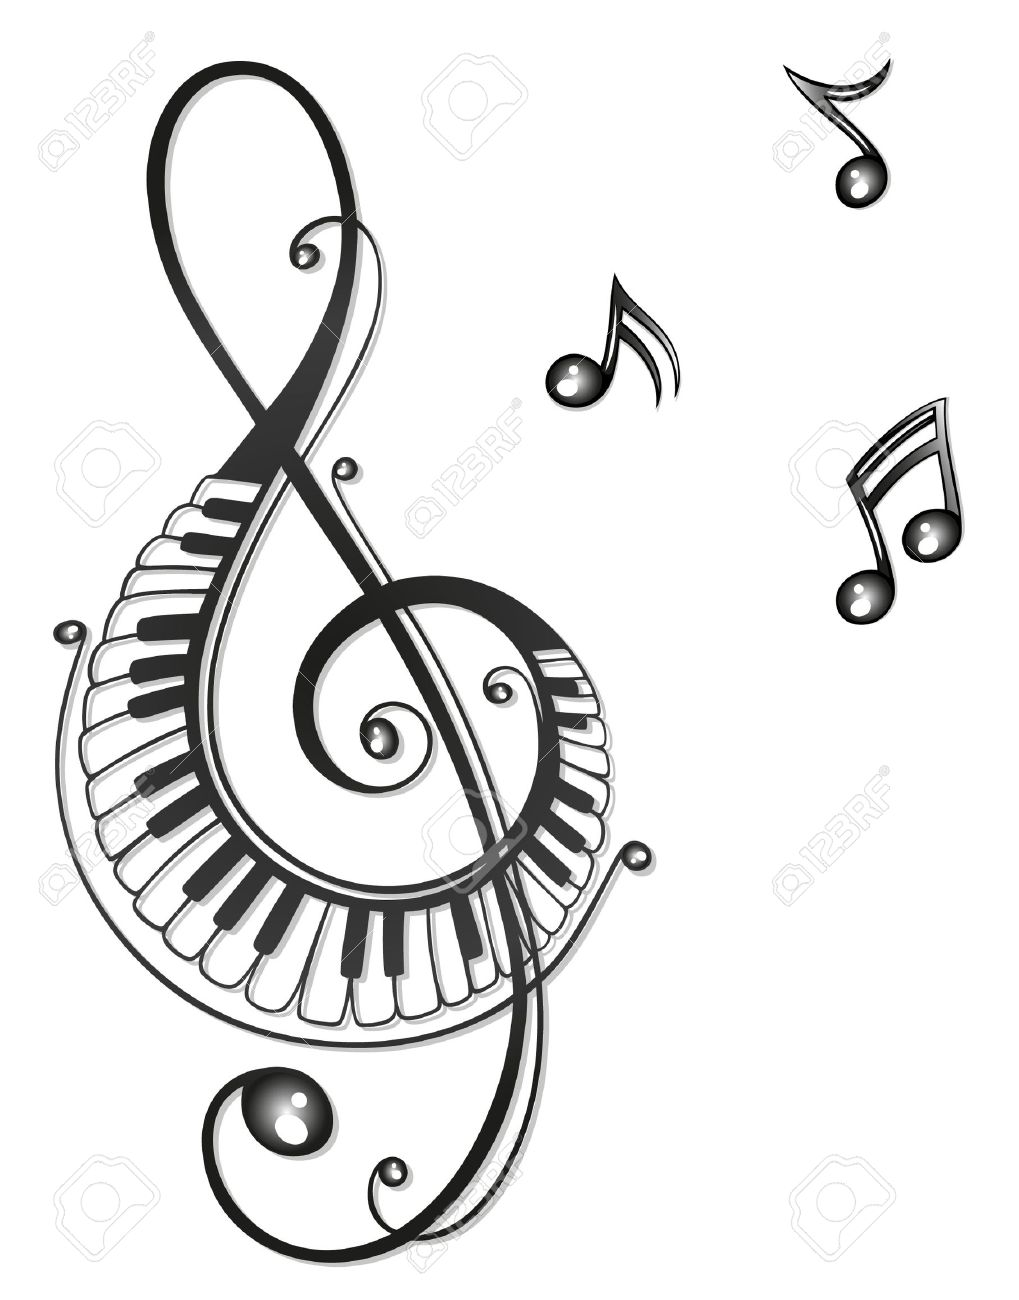 1019x1300 Clef With Music Notes, Black Tribal Royalty Free Cliparts, Vectors